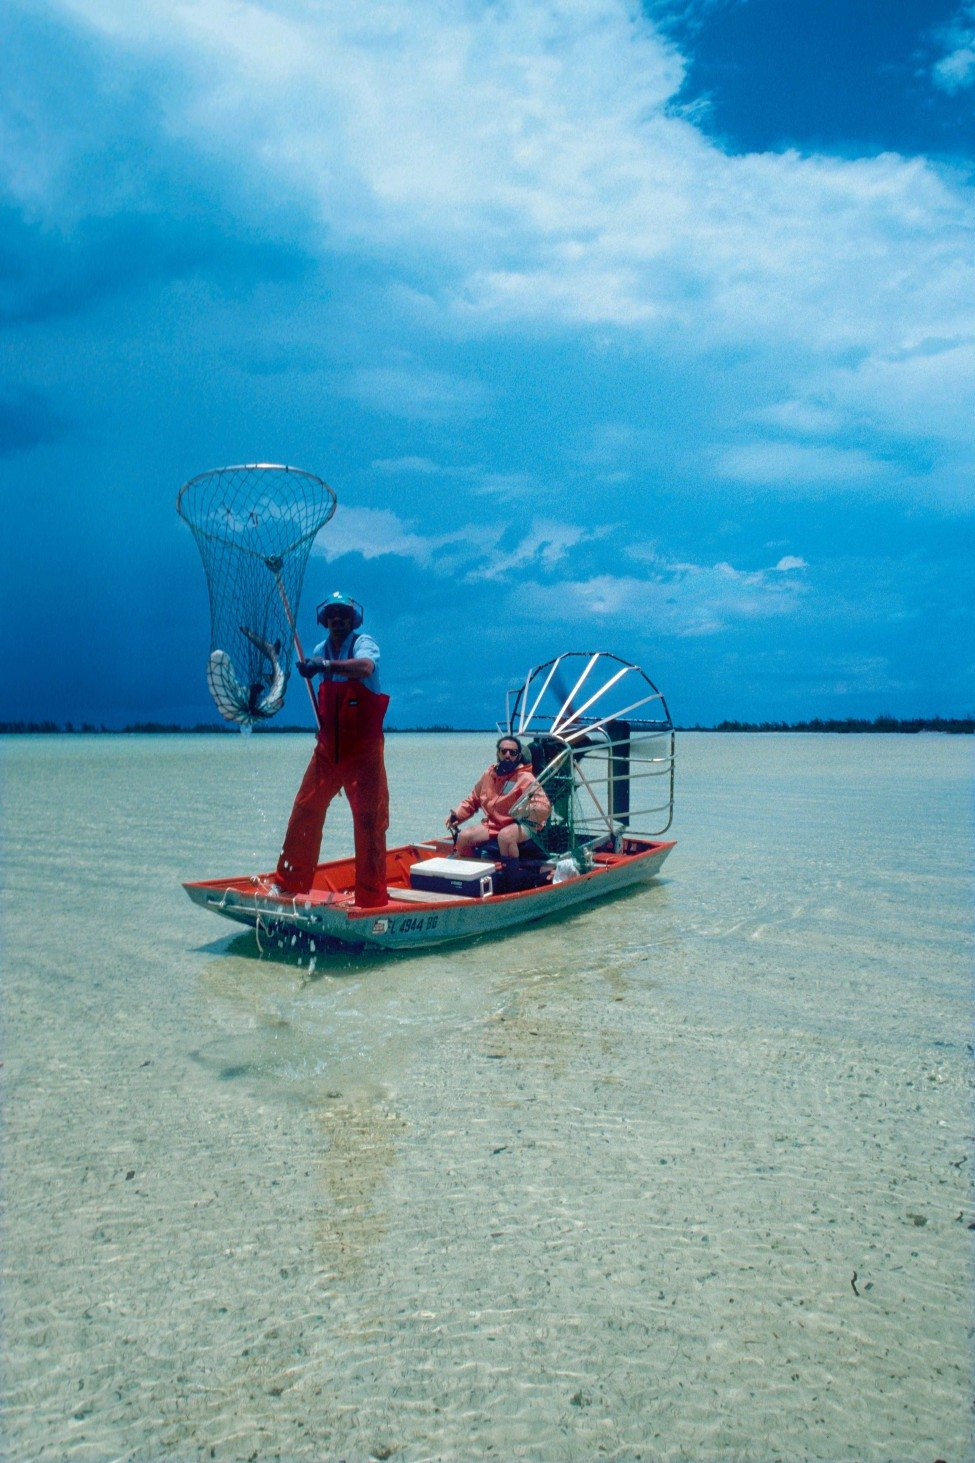 Catching juvenile lemon sharks with a net from an airboat<br /> Photo by Doug Perrine